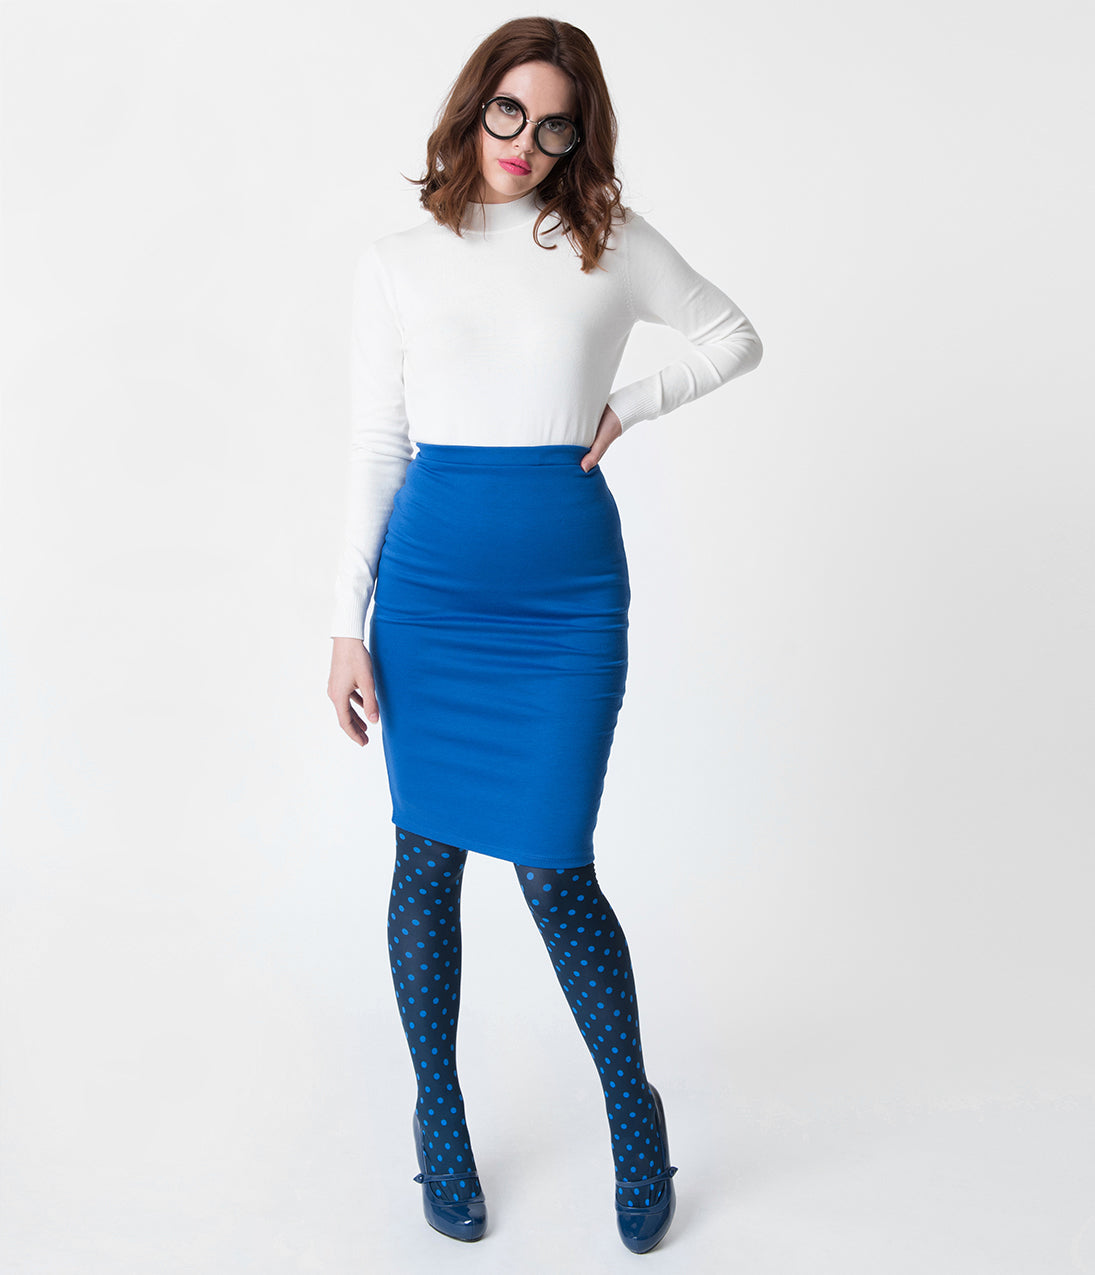 Retro Skirts: Vintage, Pencil, Circle, & Plus Sizes Royal Blue Stretch Knit Pencil Skirt $32.00 AT vintagedancer.com